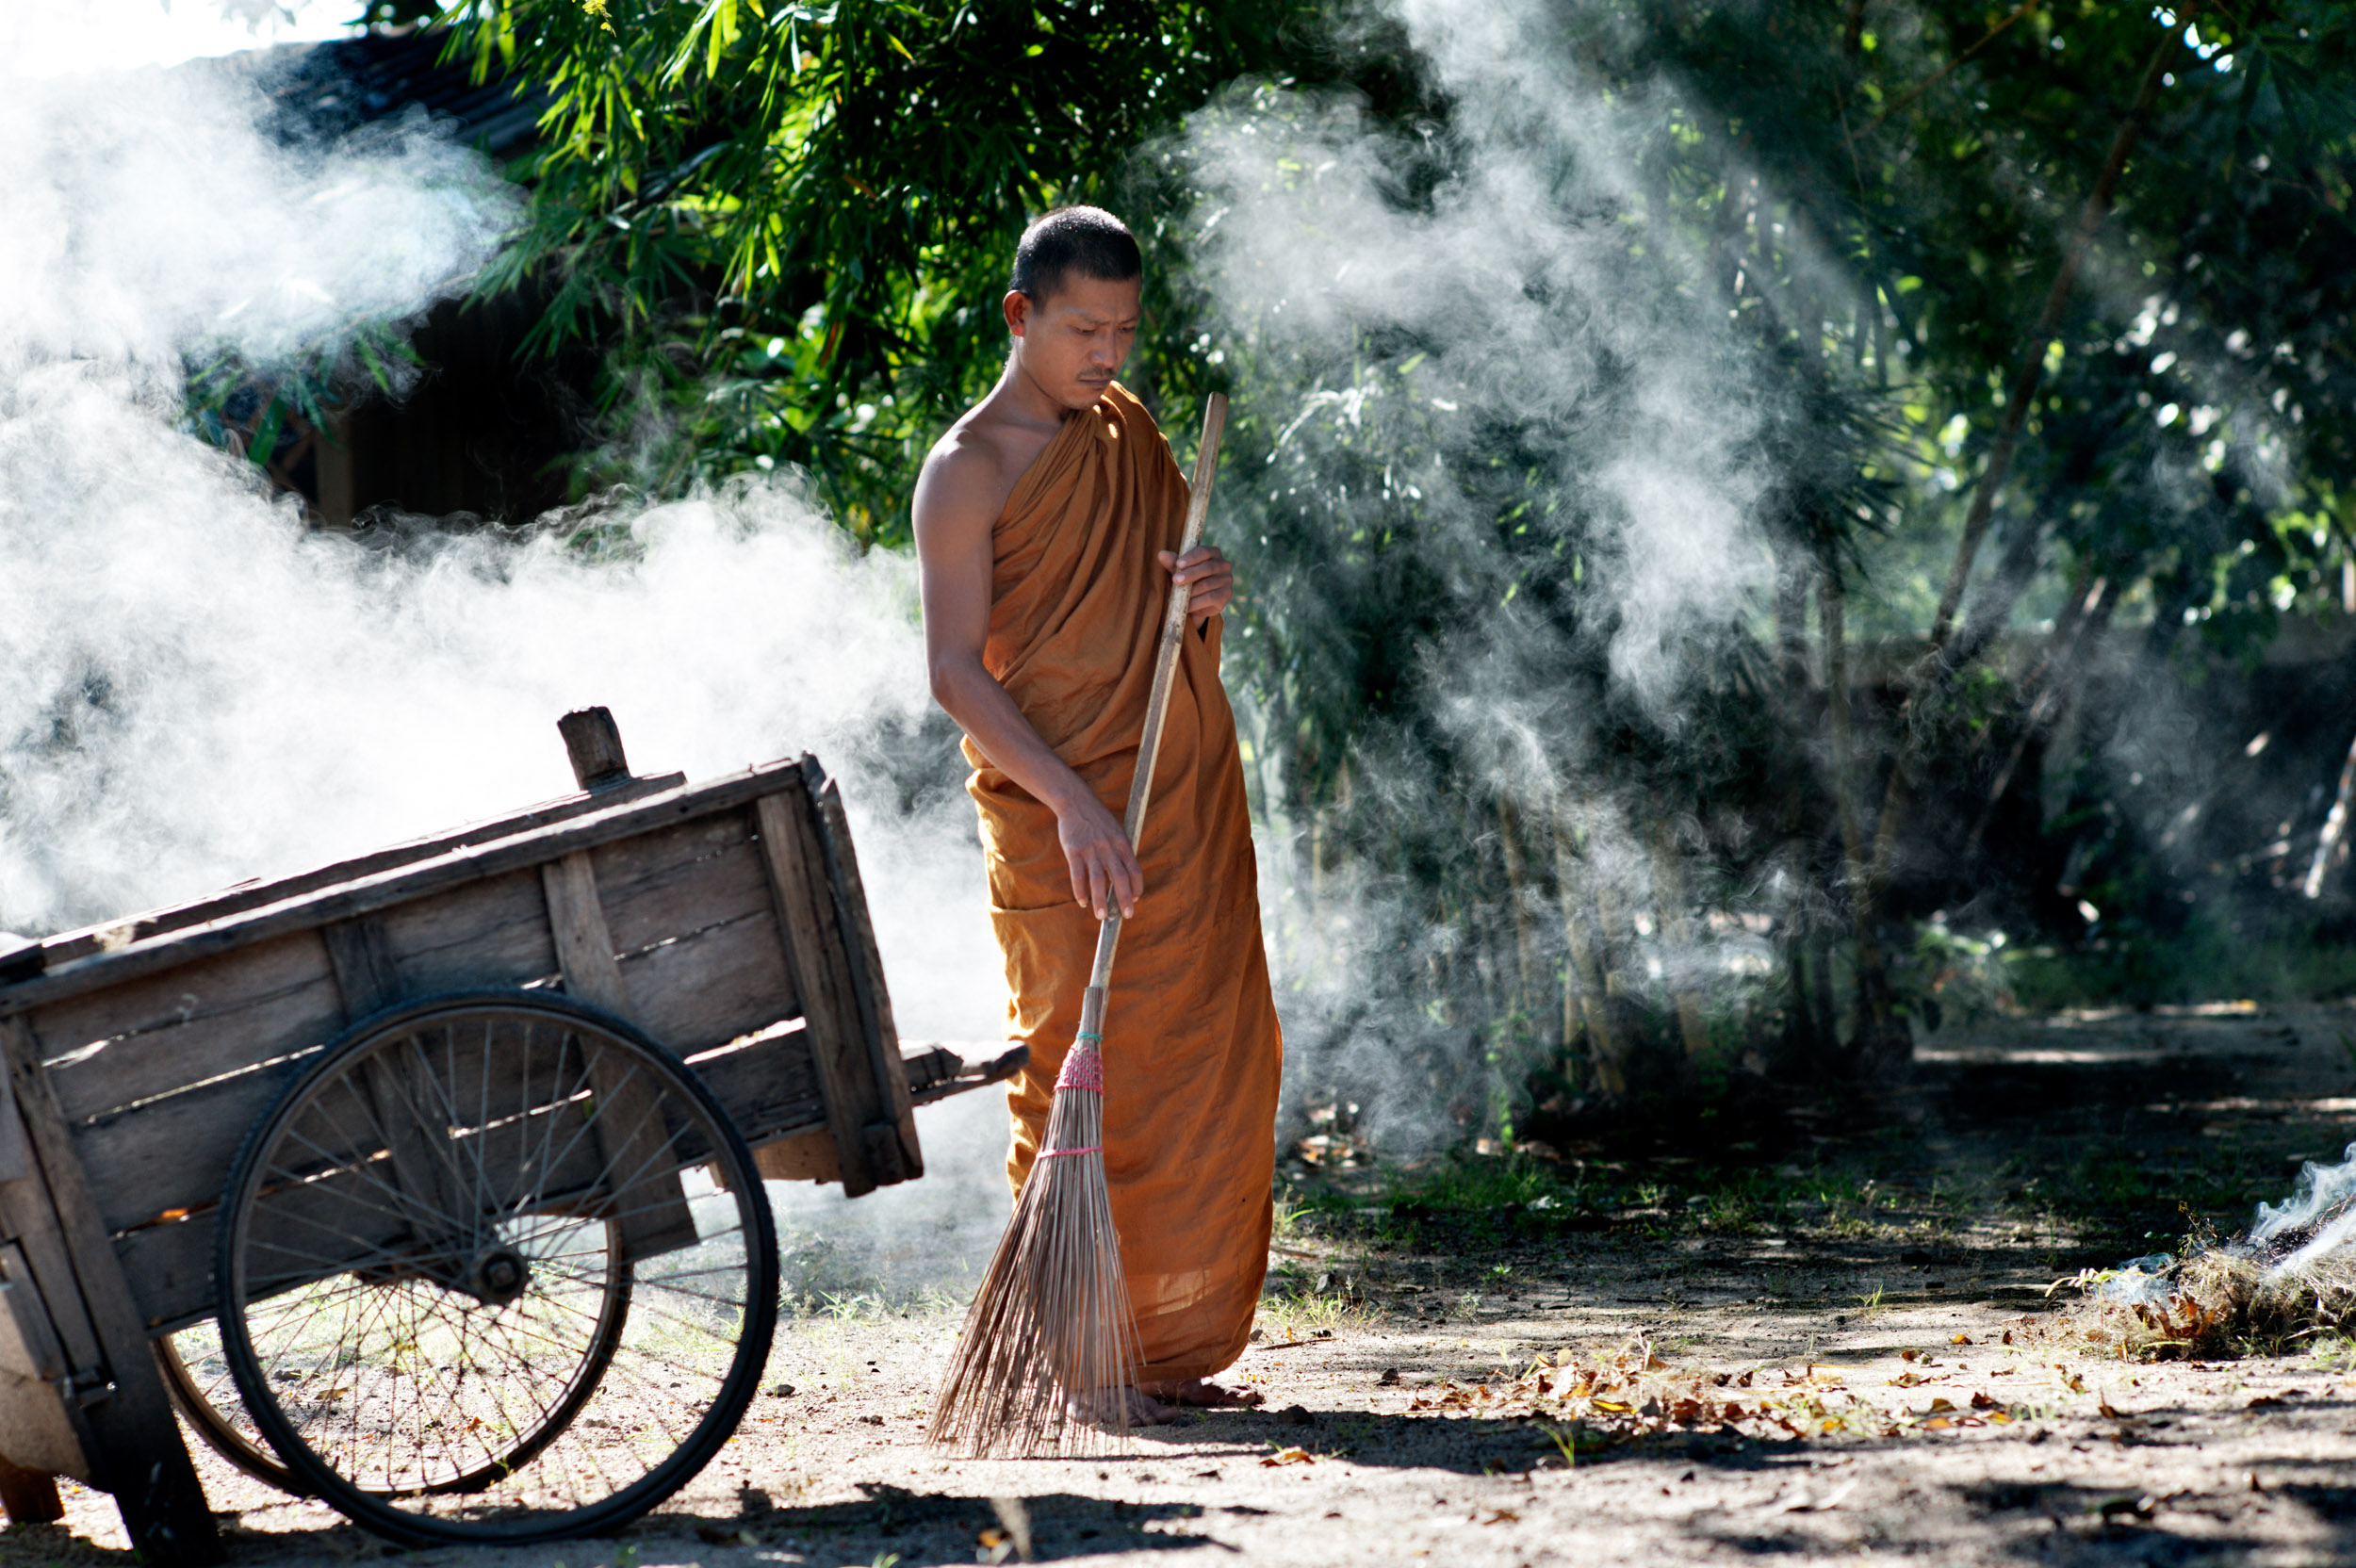 a monk sweeping leaves portrait photography idea